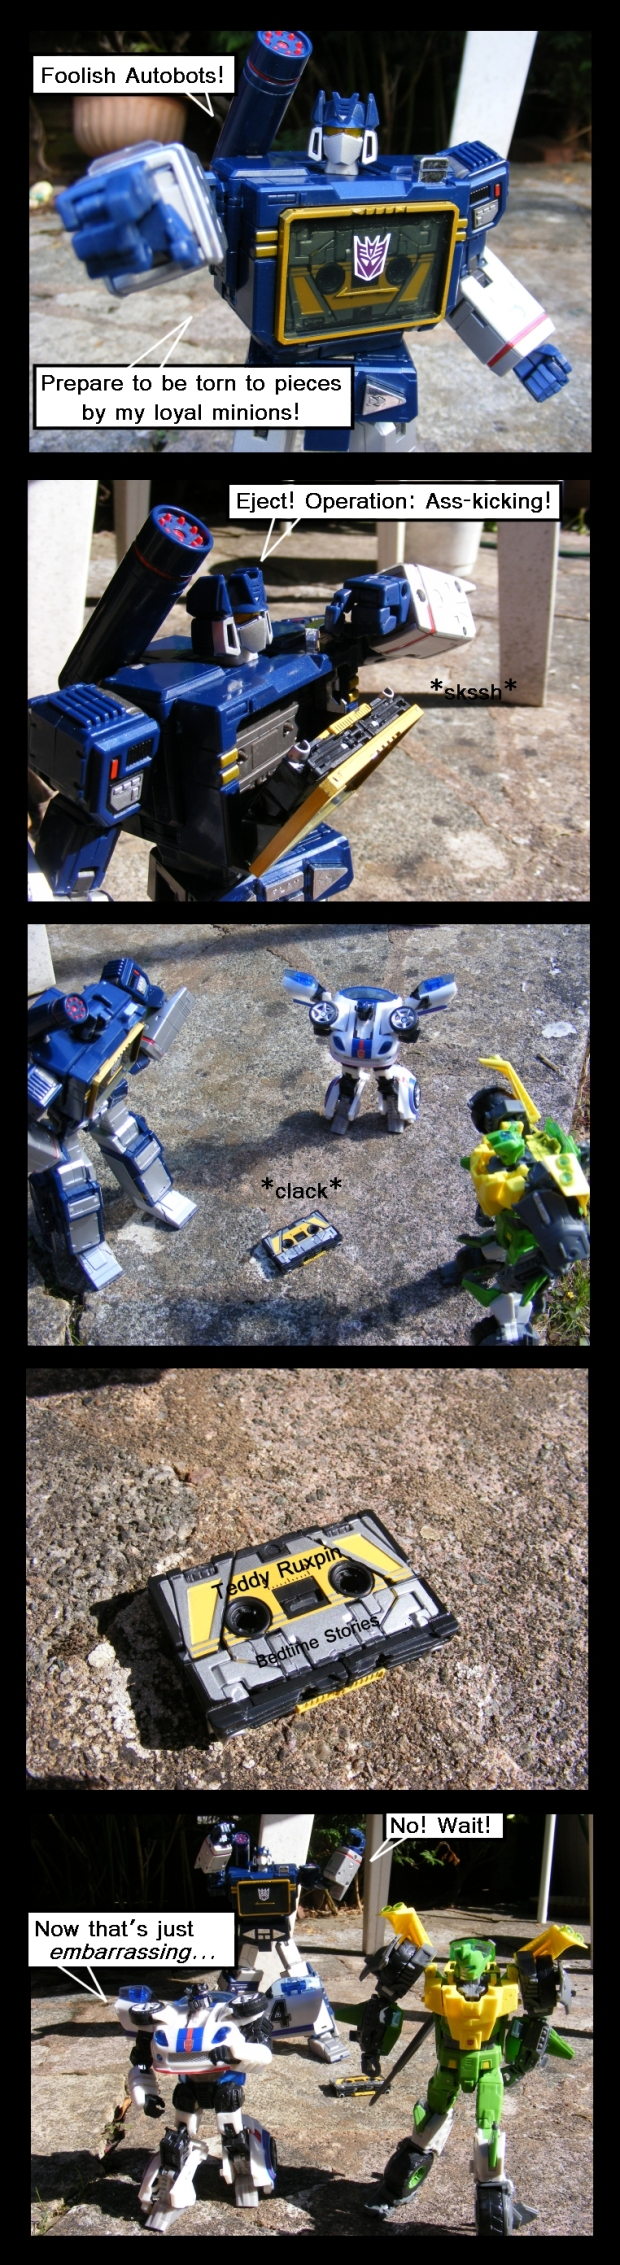 Soundwave_2